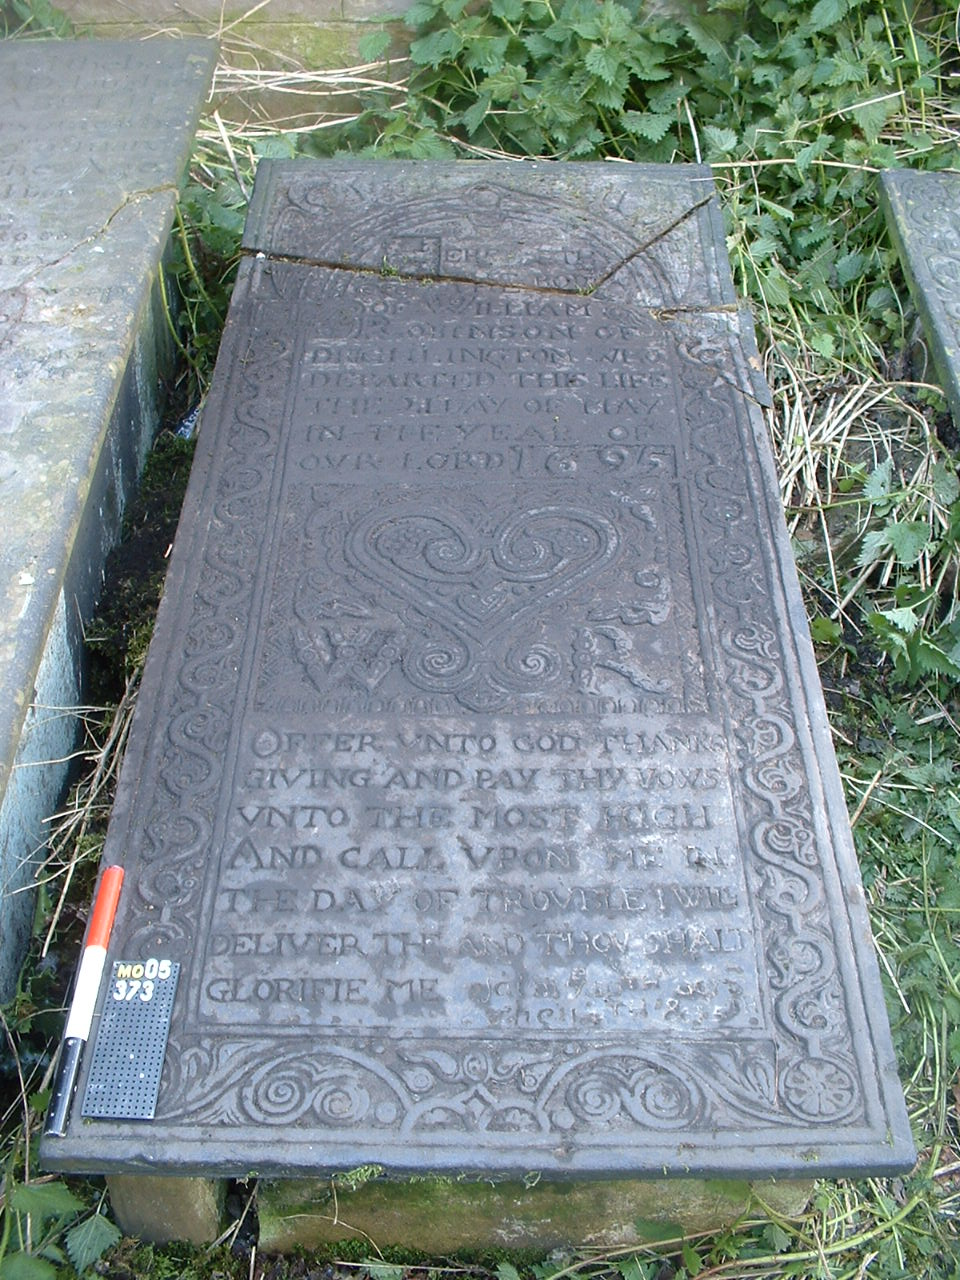 A tombstone with a heart motif